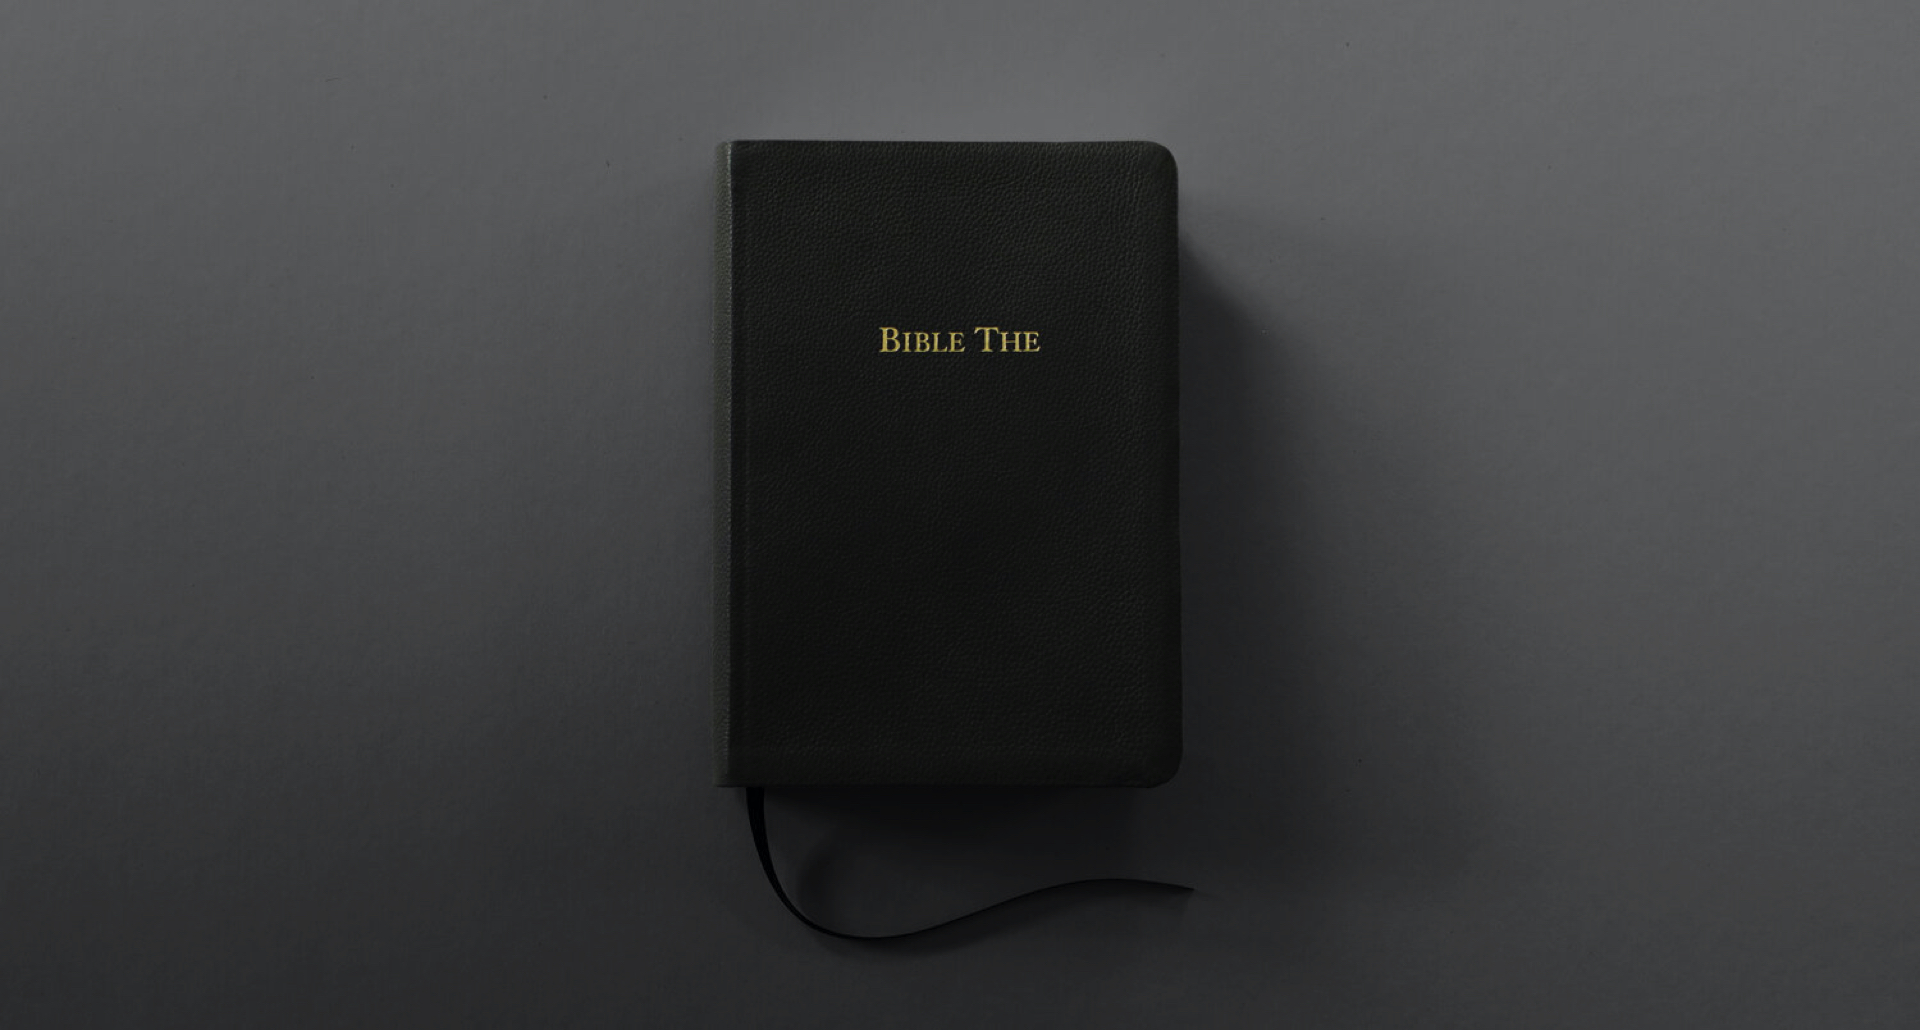 BIBLE THE, the Bible reorganized in alphabetical order   Collater.al